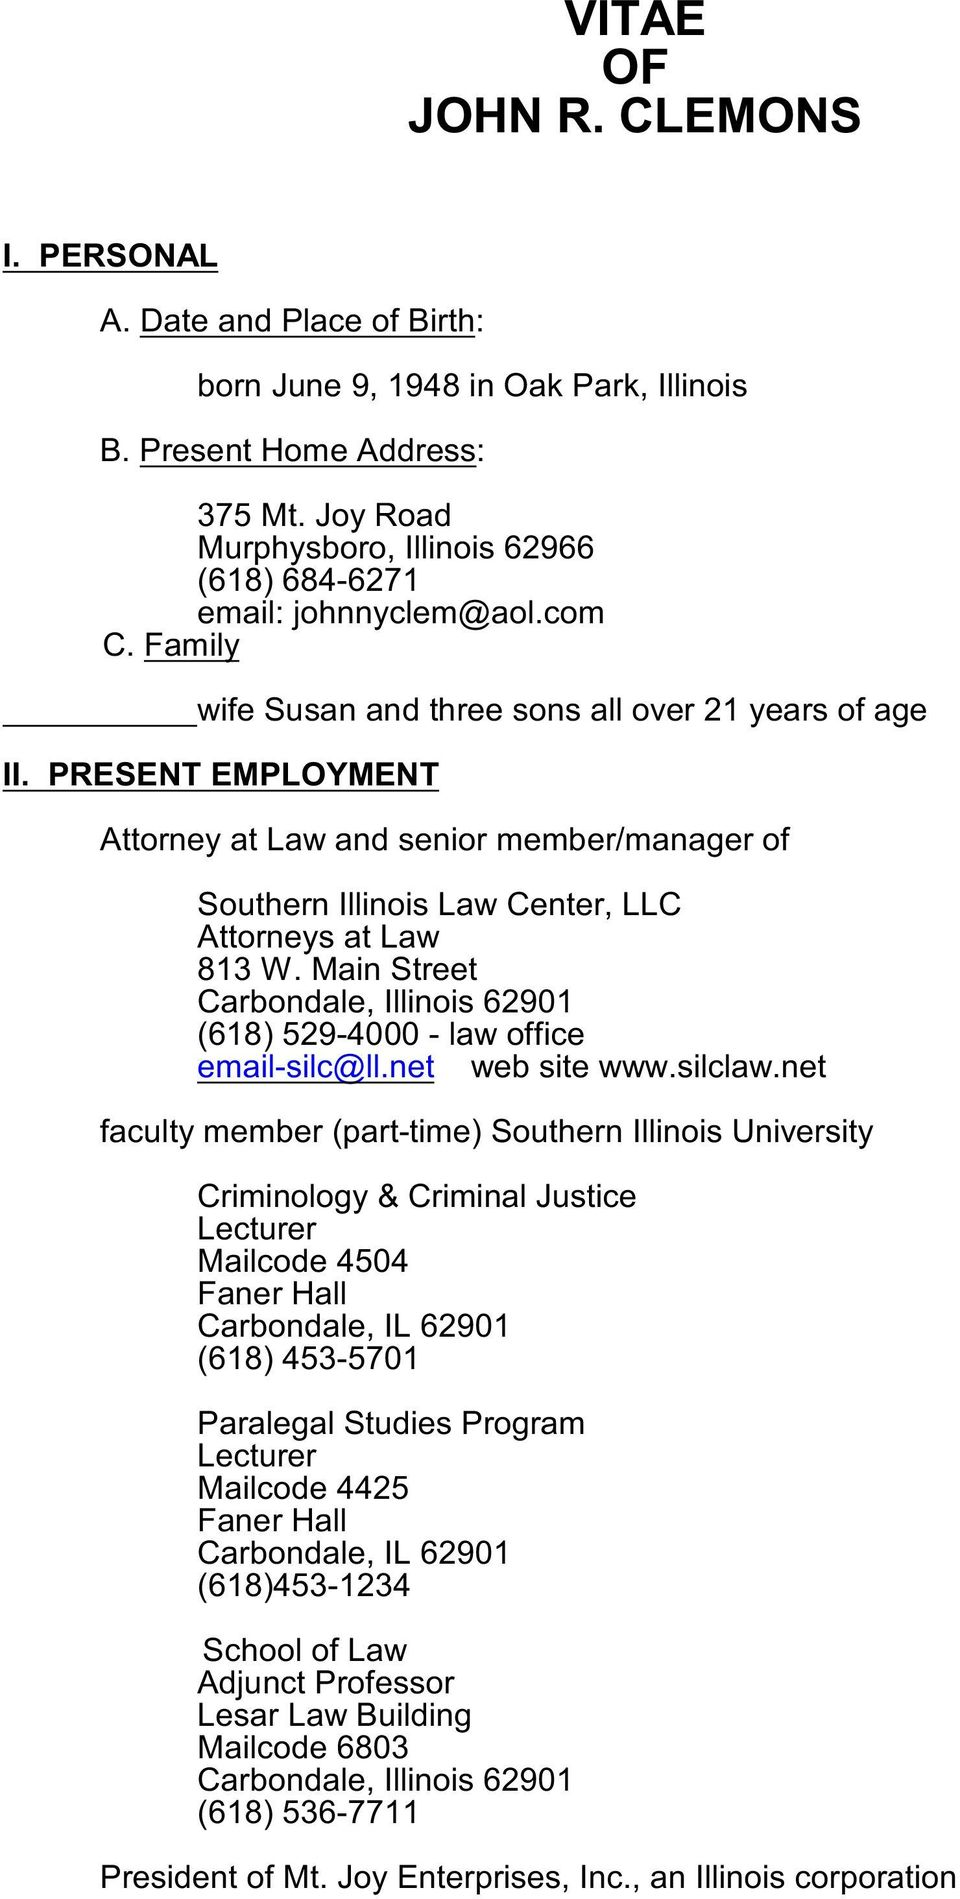 PRESENT EMPLOYMENT Attorney at Law and senior member/manager of Southern Illinois Law Center, LLC Attorneys at Law 813 W. Main Street (618) 529-4000 - law office email-silc@ll.net web site www.